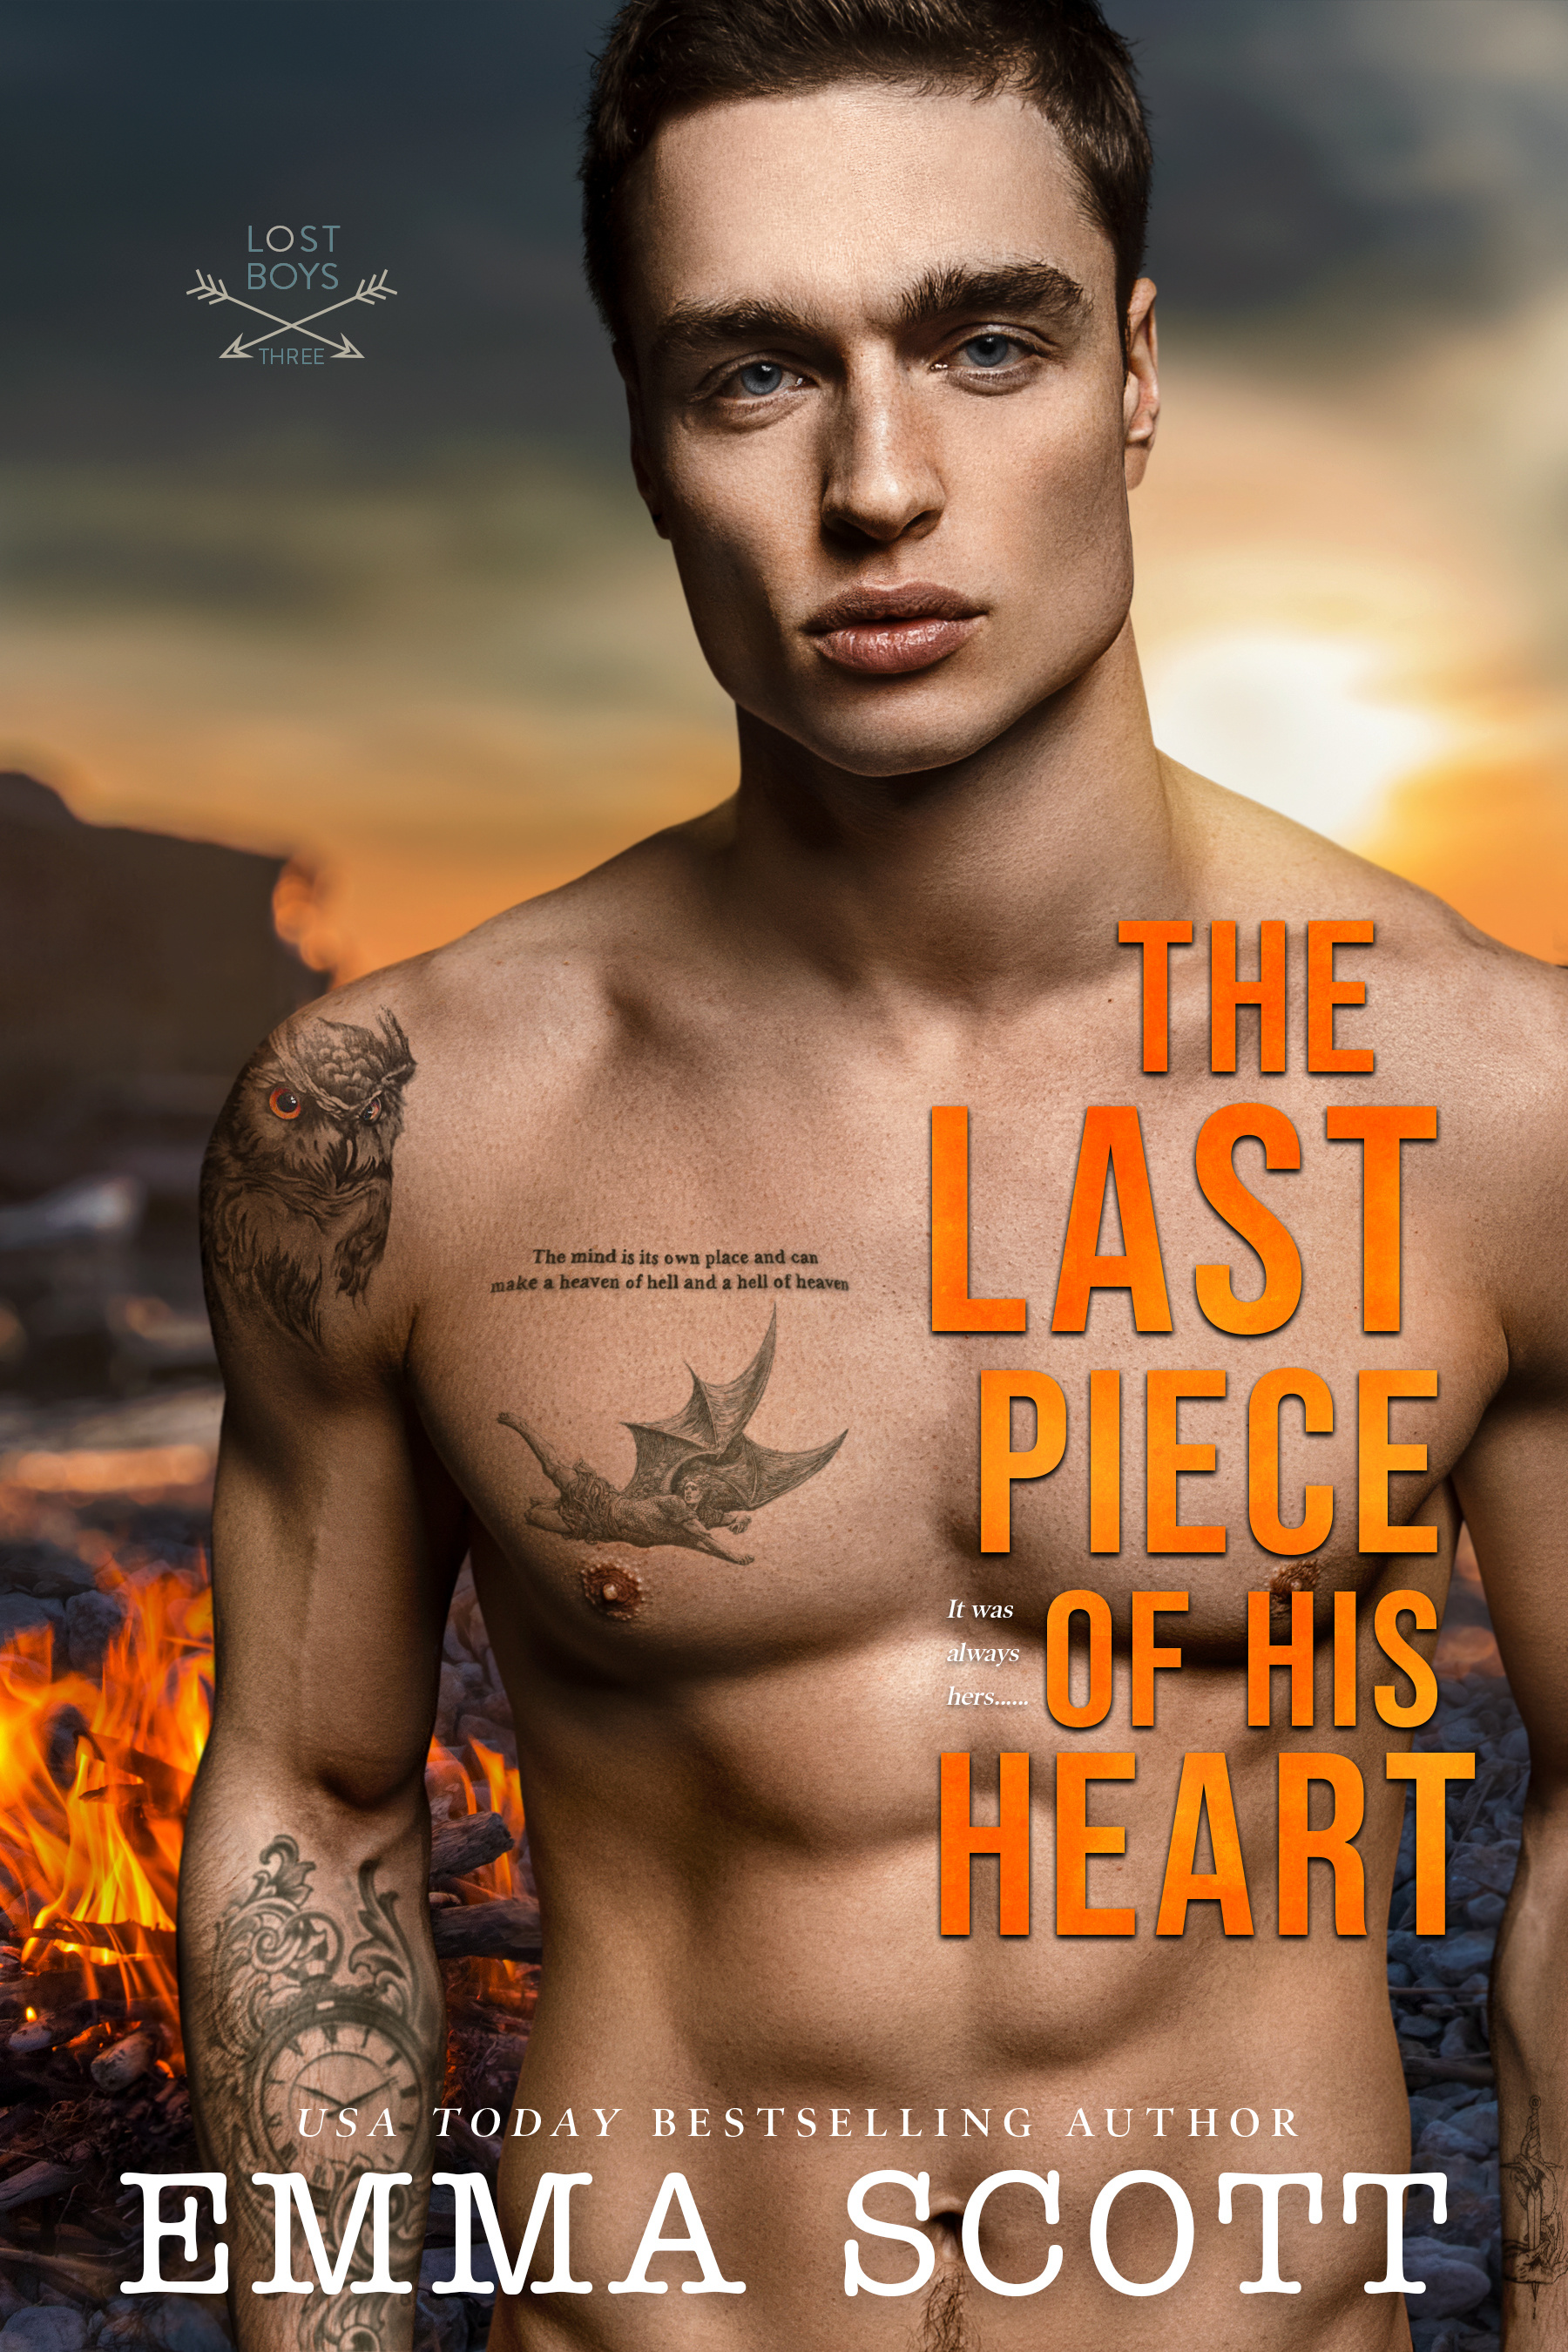 The Last Piece of His Heart (Lost Boys, #3)